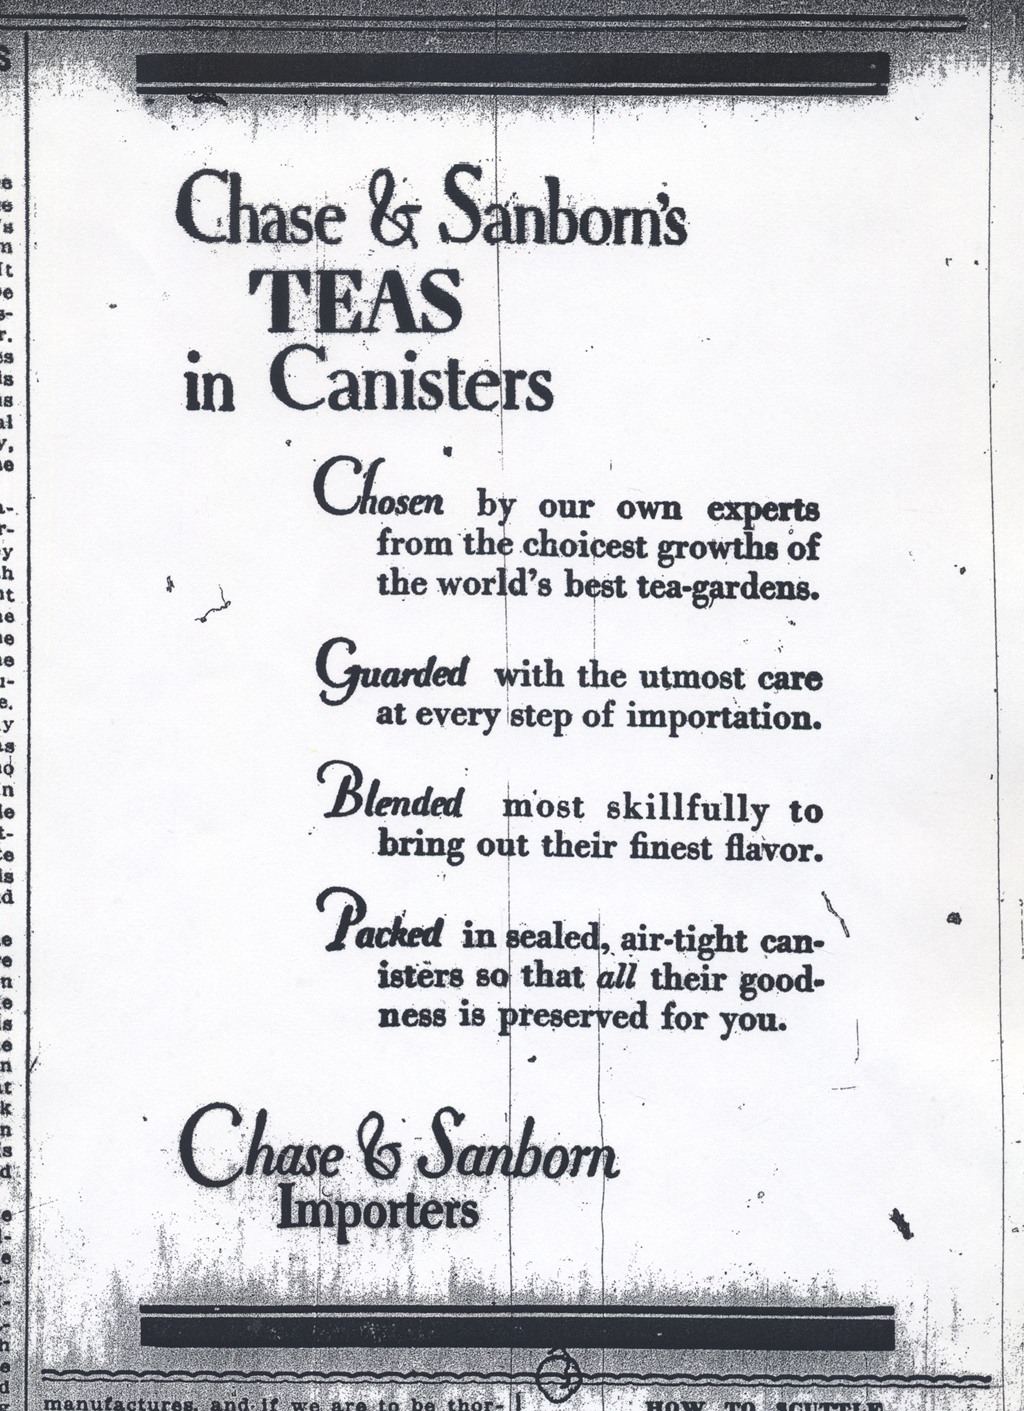 Chase & Sanborn advertisement in The Boston Evening Transcript February 4, 1916. Design by W.A. Dwiggins.